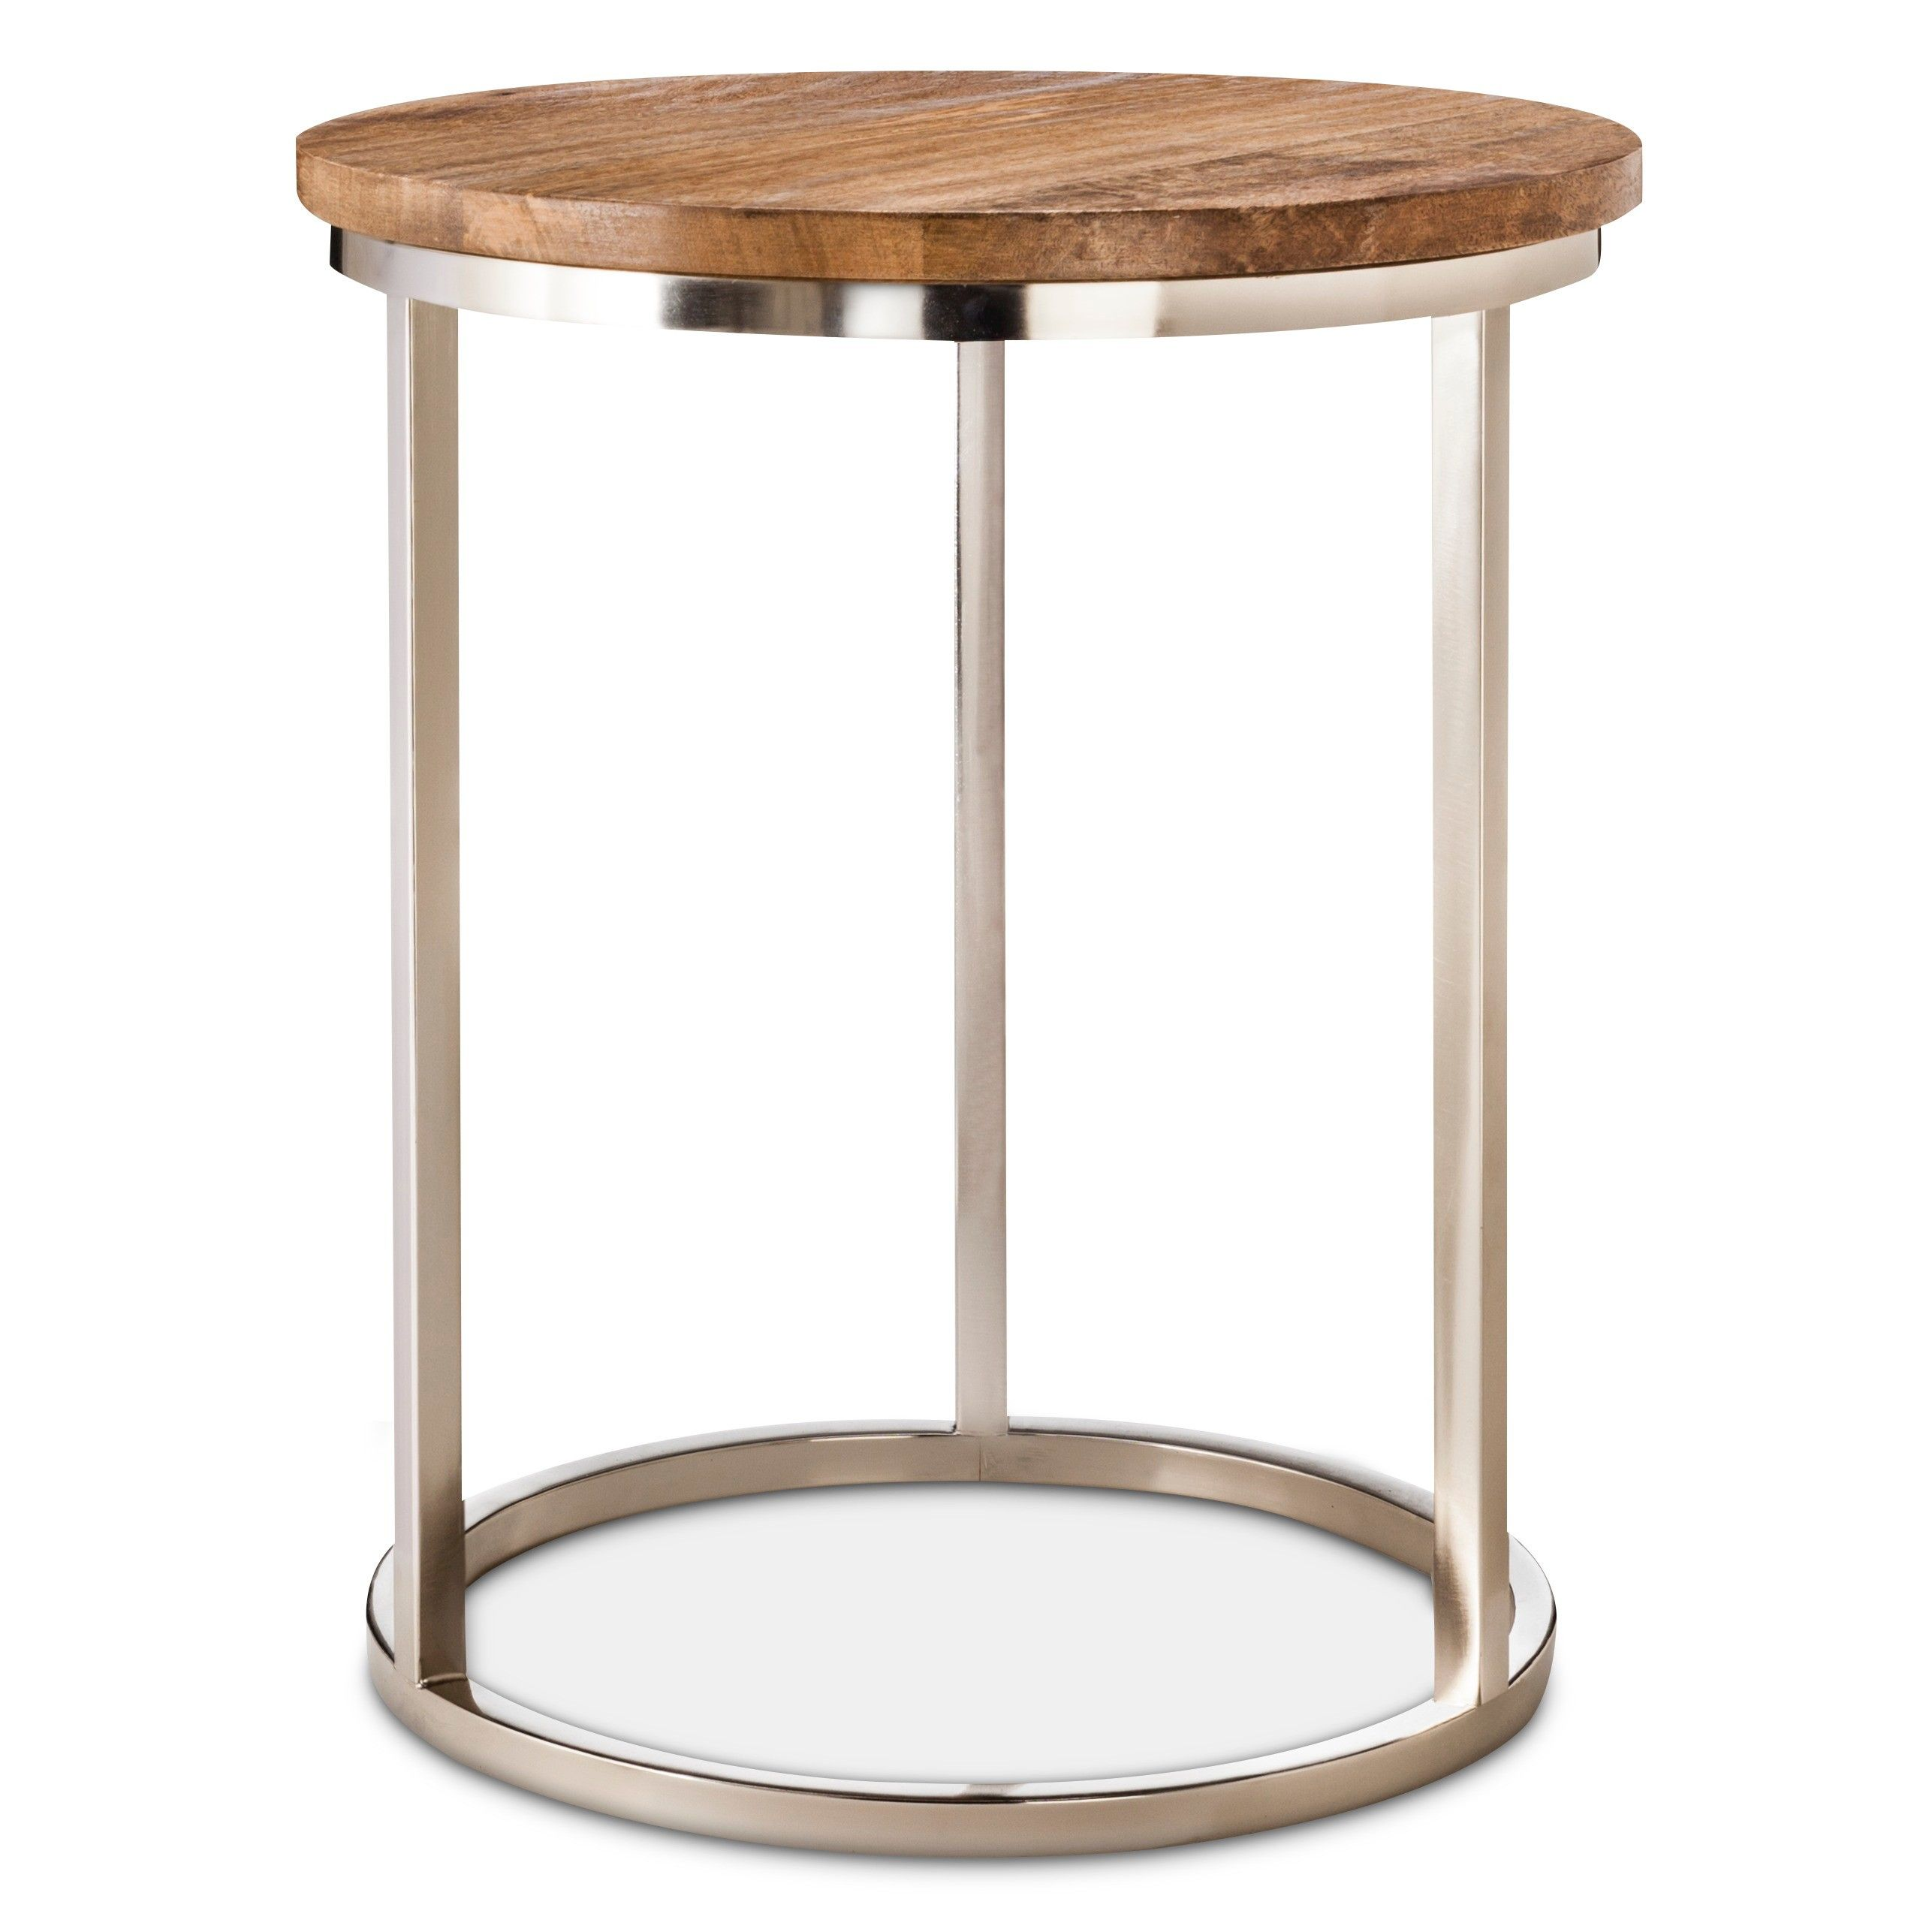 threshold metal accent table with wood top target for the home outdoor woven hand painted coffee small solid coastal living lamps and chairs white storage modern nest tables